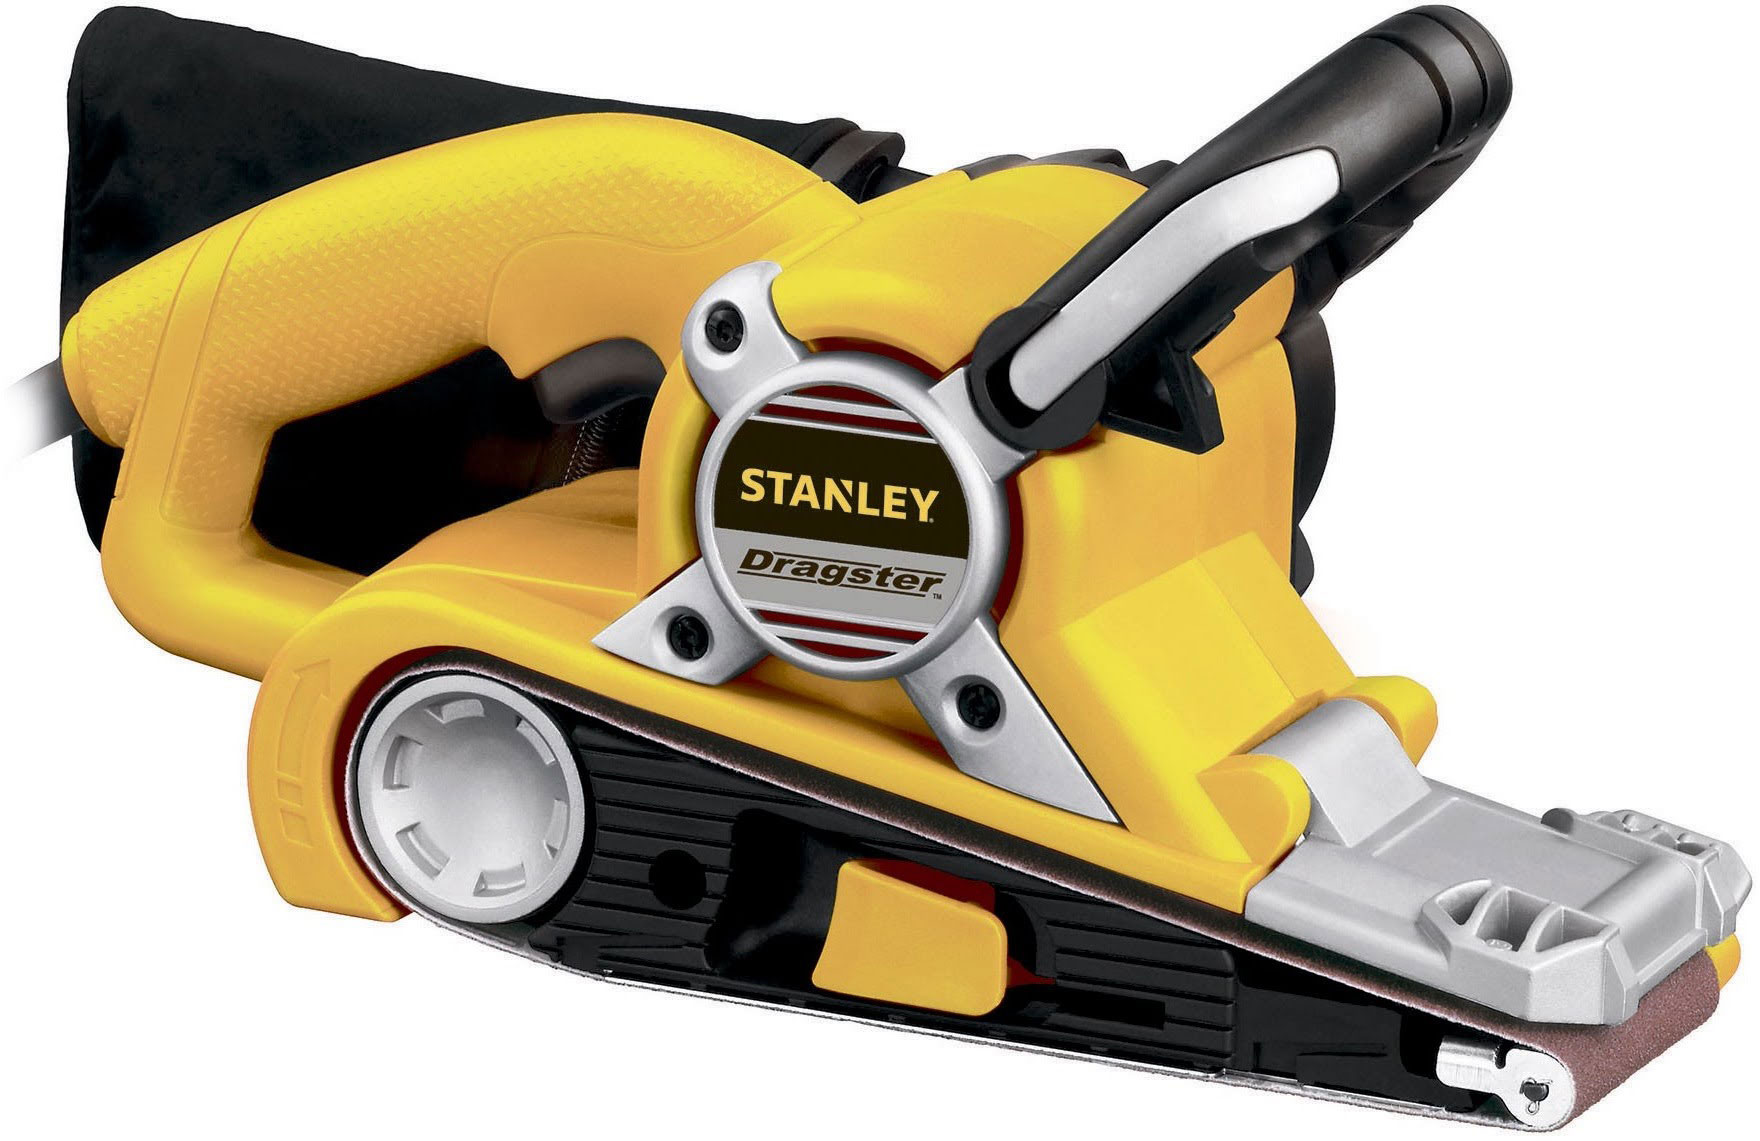 Stanley STBS720-RU - ��������� ���������� (Yellow)